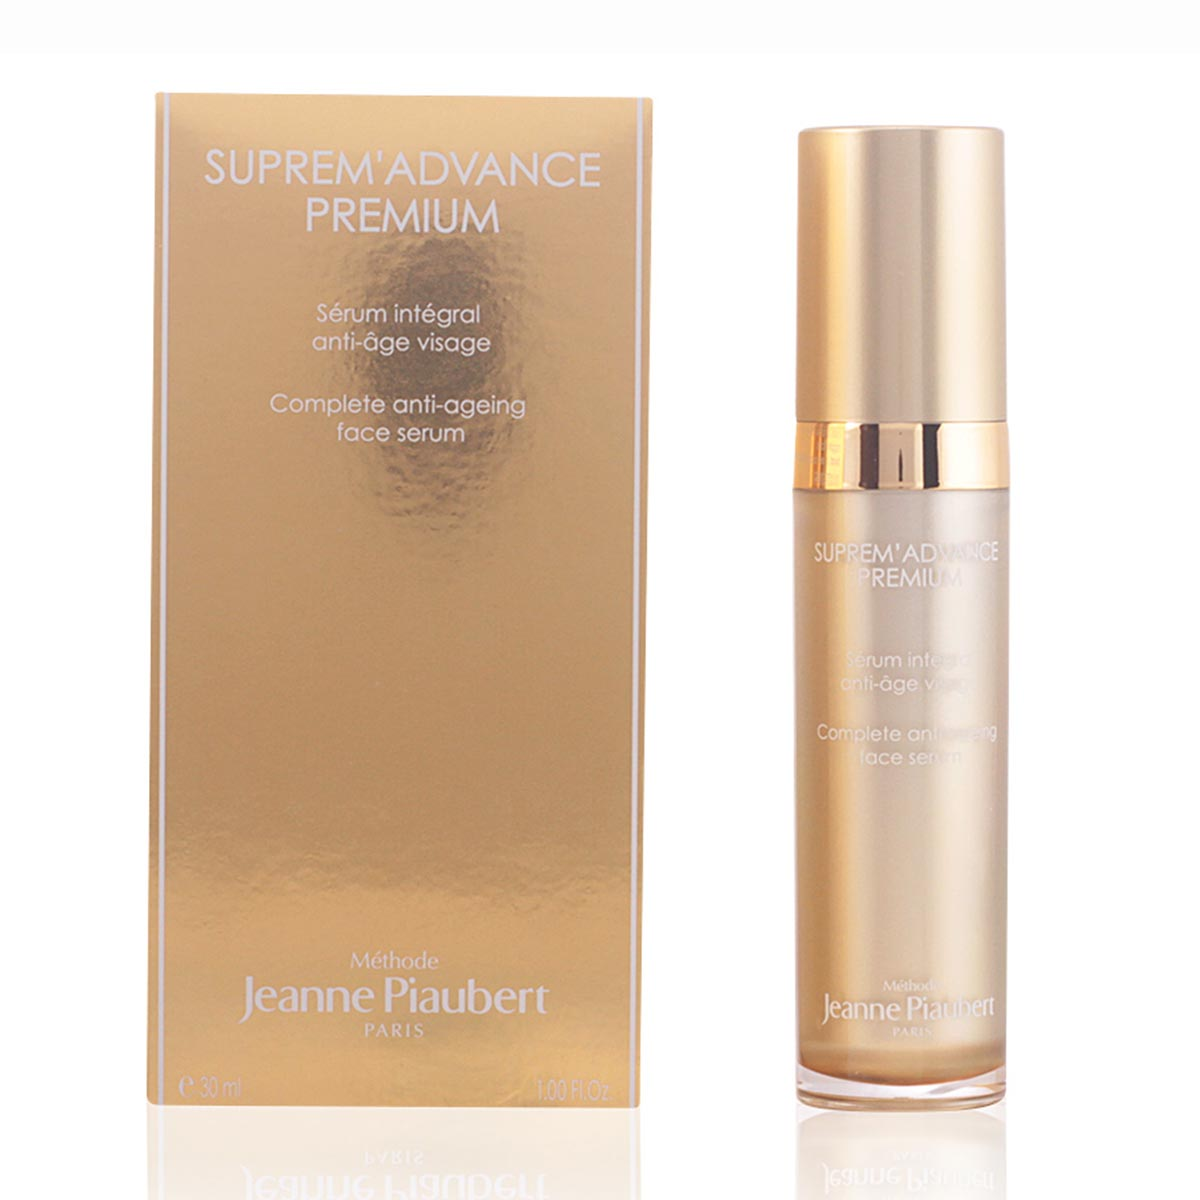 Jeanne piaubert suprem advance premium complete anti ageing face serum 30ml